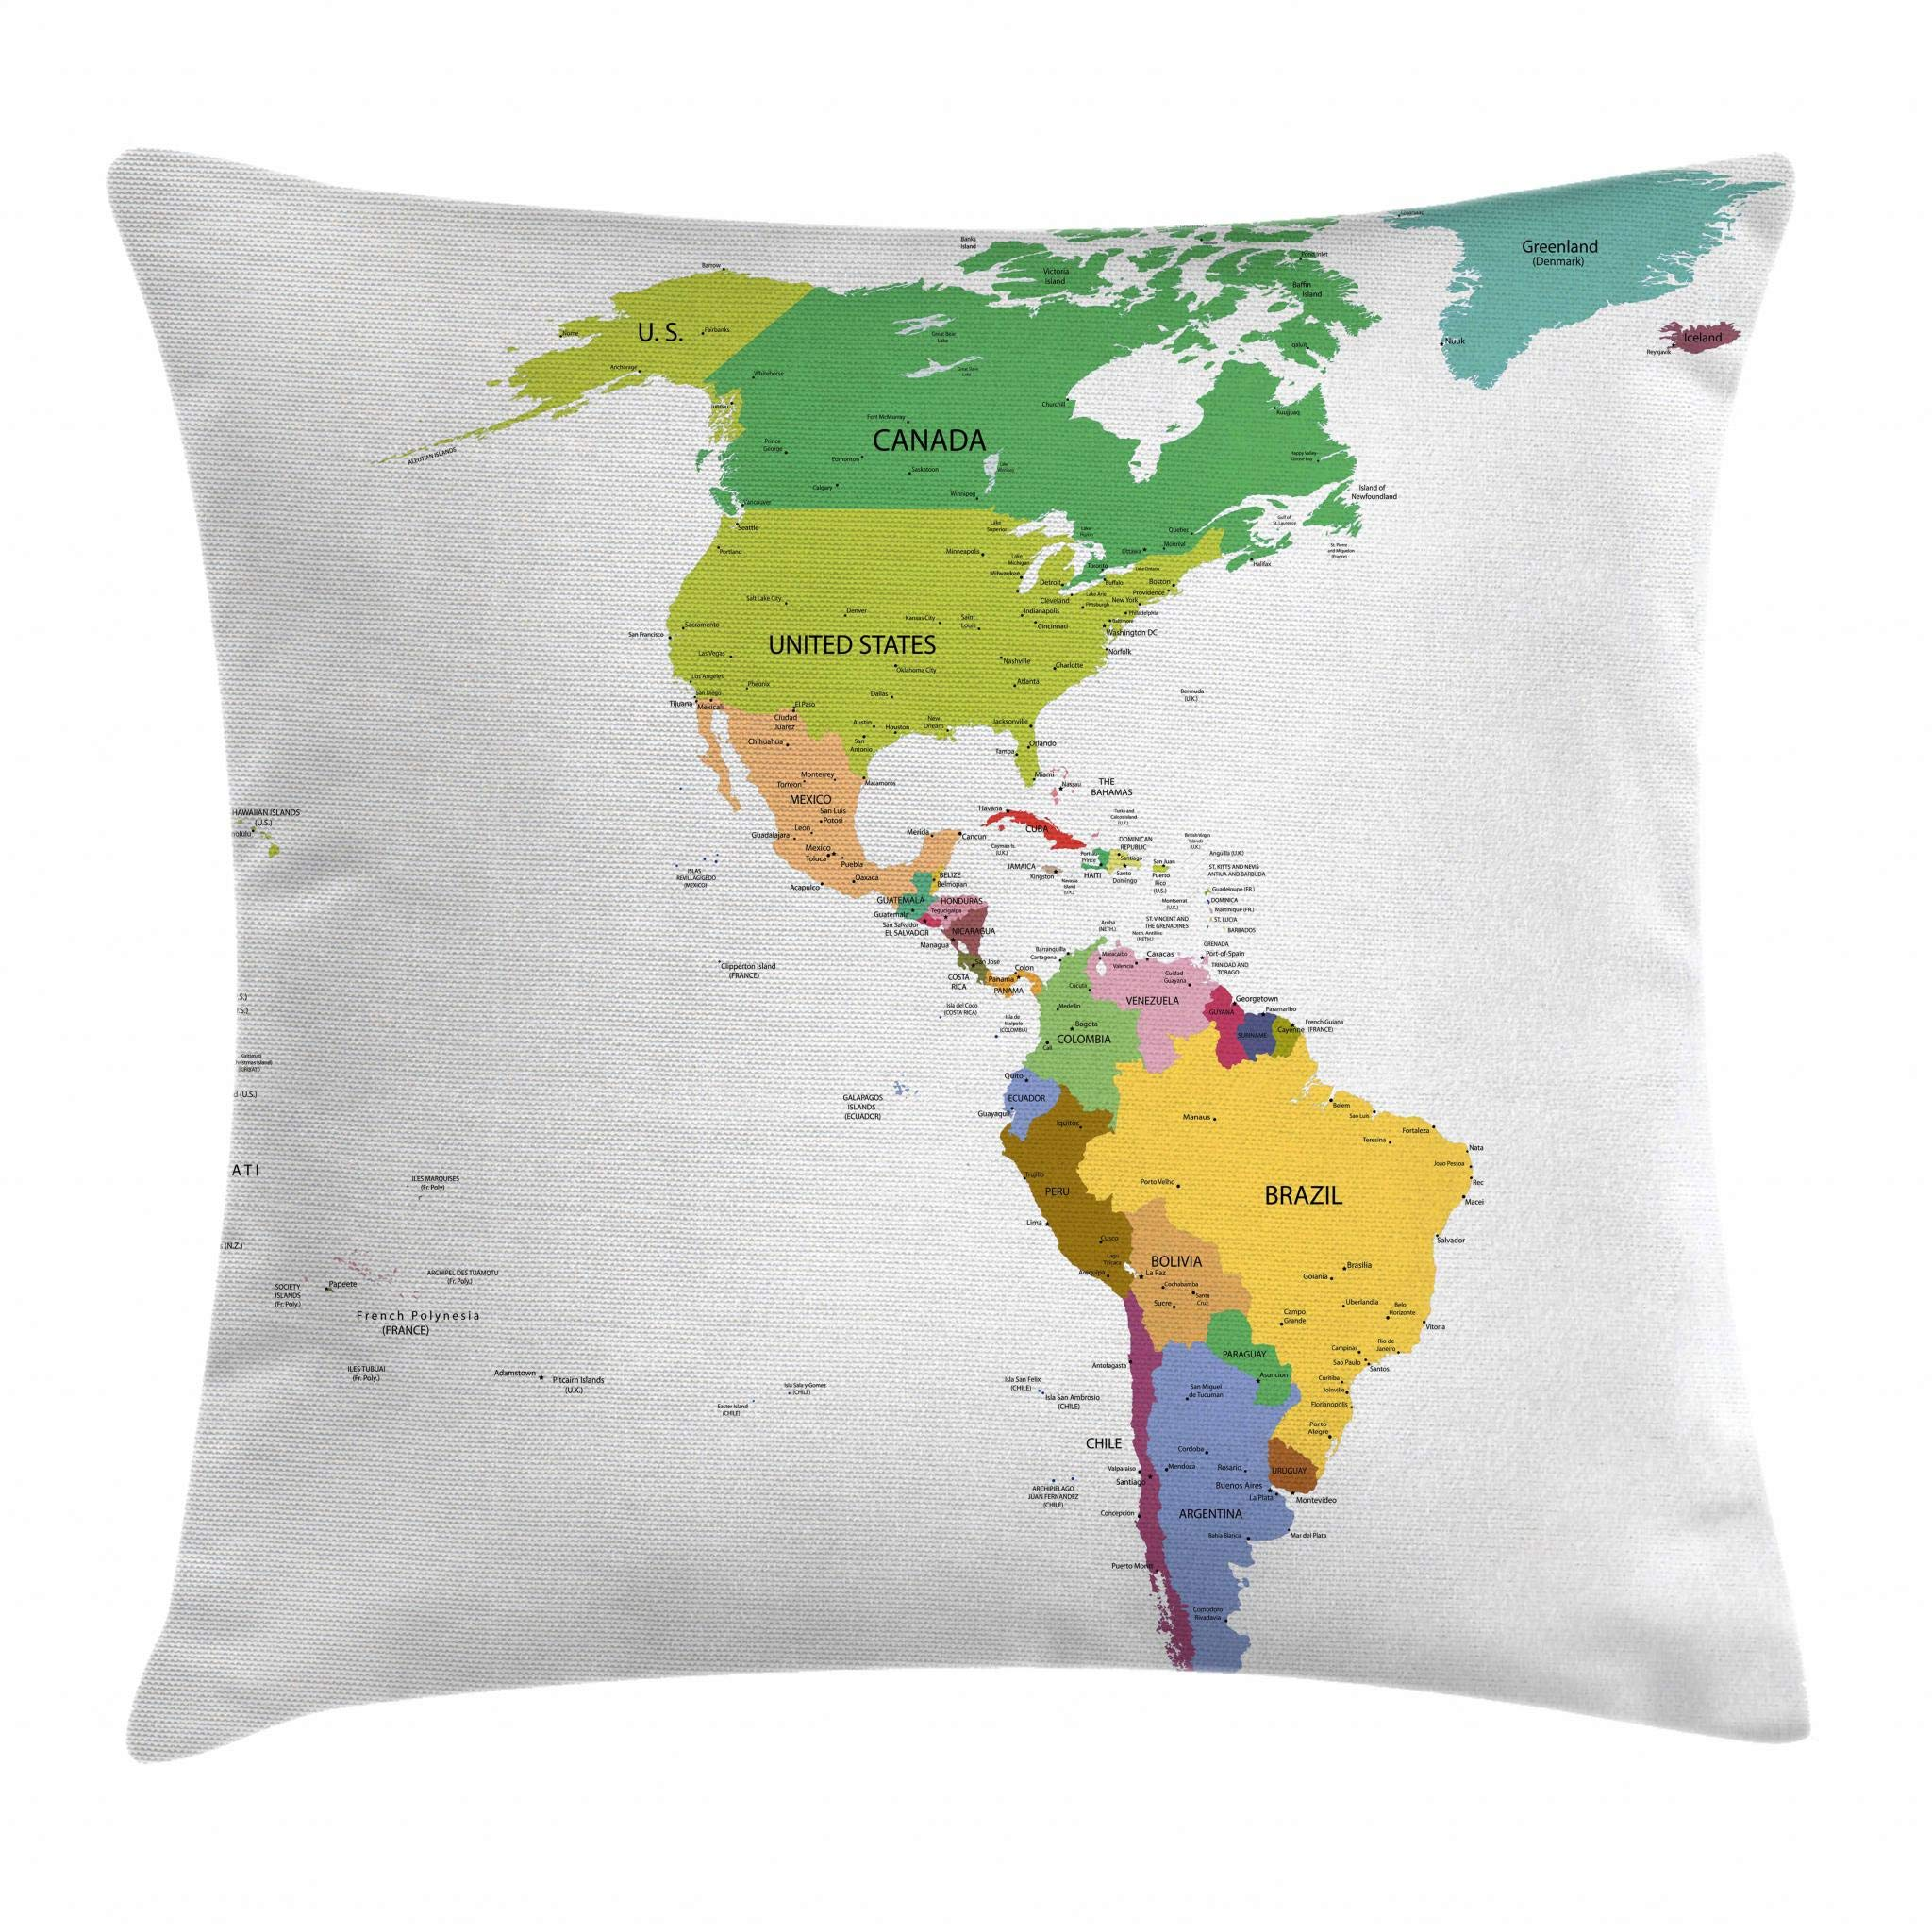 Ambesonne Map Throw Pillow Cushion Cover, Map of South and North America with Countries Capitals and Major Cities Colorful Design, Decorative Square Accent Pillow Case, 26 X 26 Inches, Multicolor